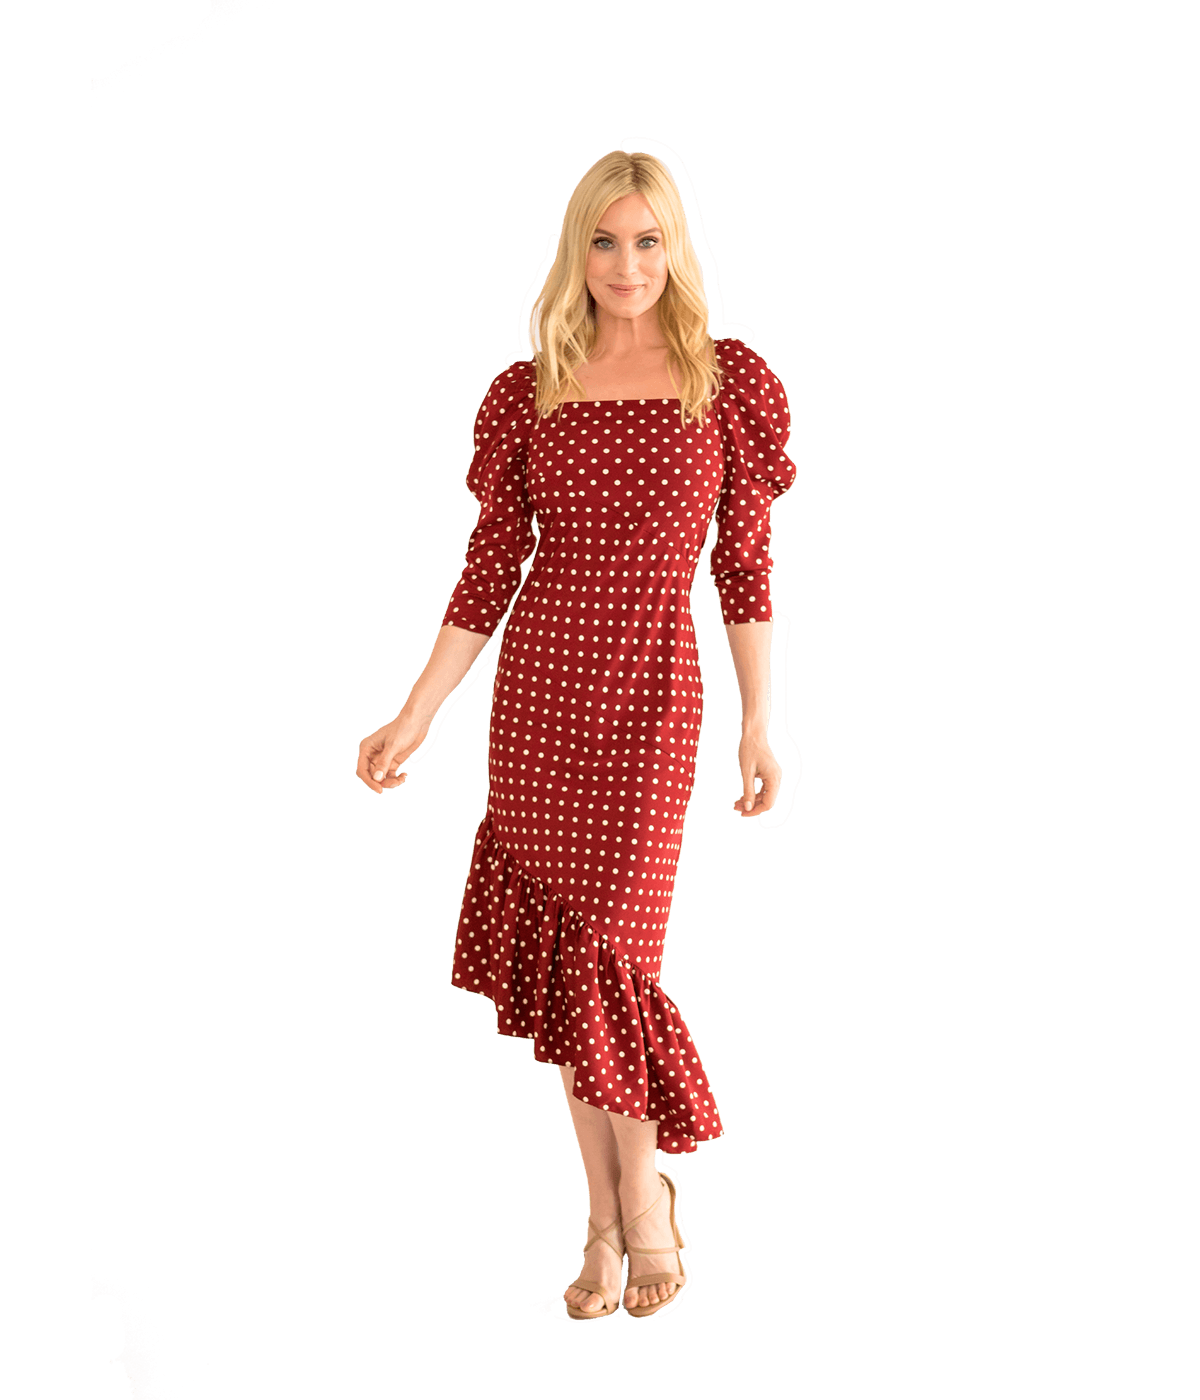 Diagonal Midi Dress - Dot Print - Lady Jetset